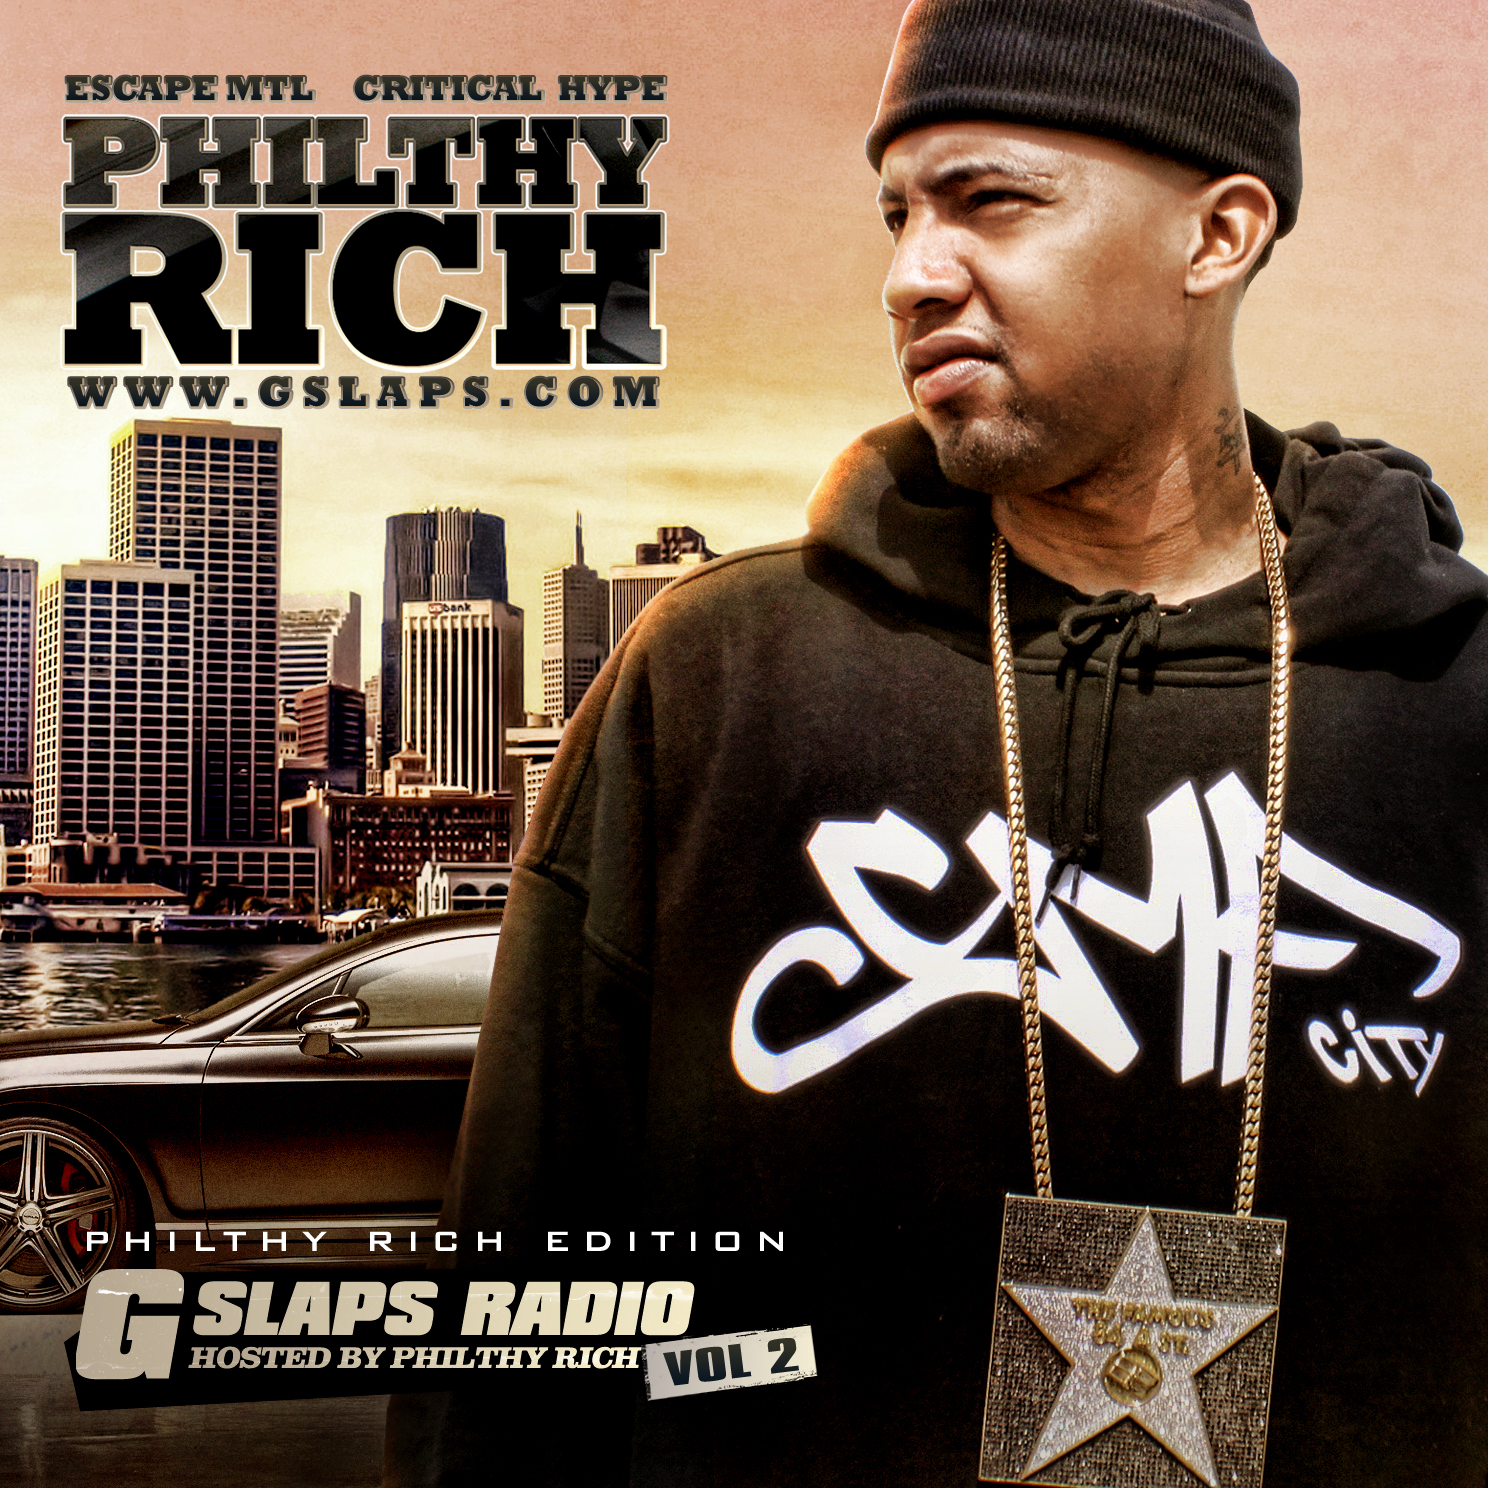 philthy rich gslaps radio front cover